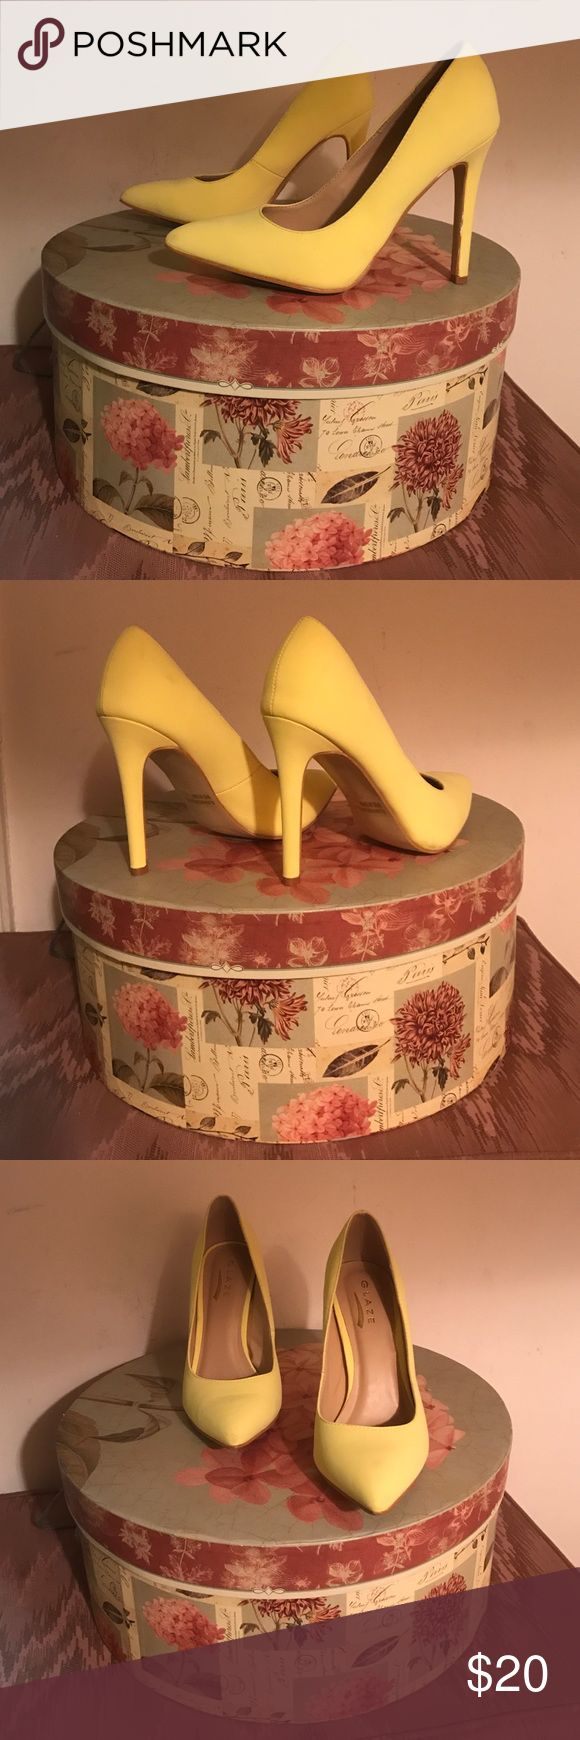 Retro Yellow Pumps Add rays of sunshine to your closet during the winter months! Gently worn (only twice) yellow pumps, size 8M. Approximate heel height: 4 inches, single sole. All manmade materials. Glaze Shoes Heels